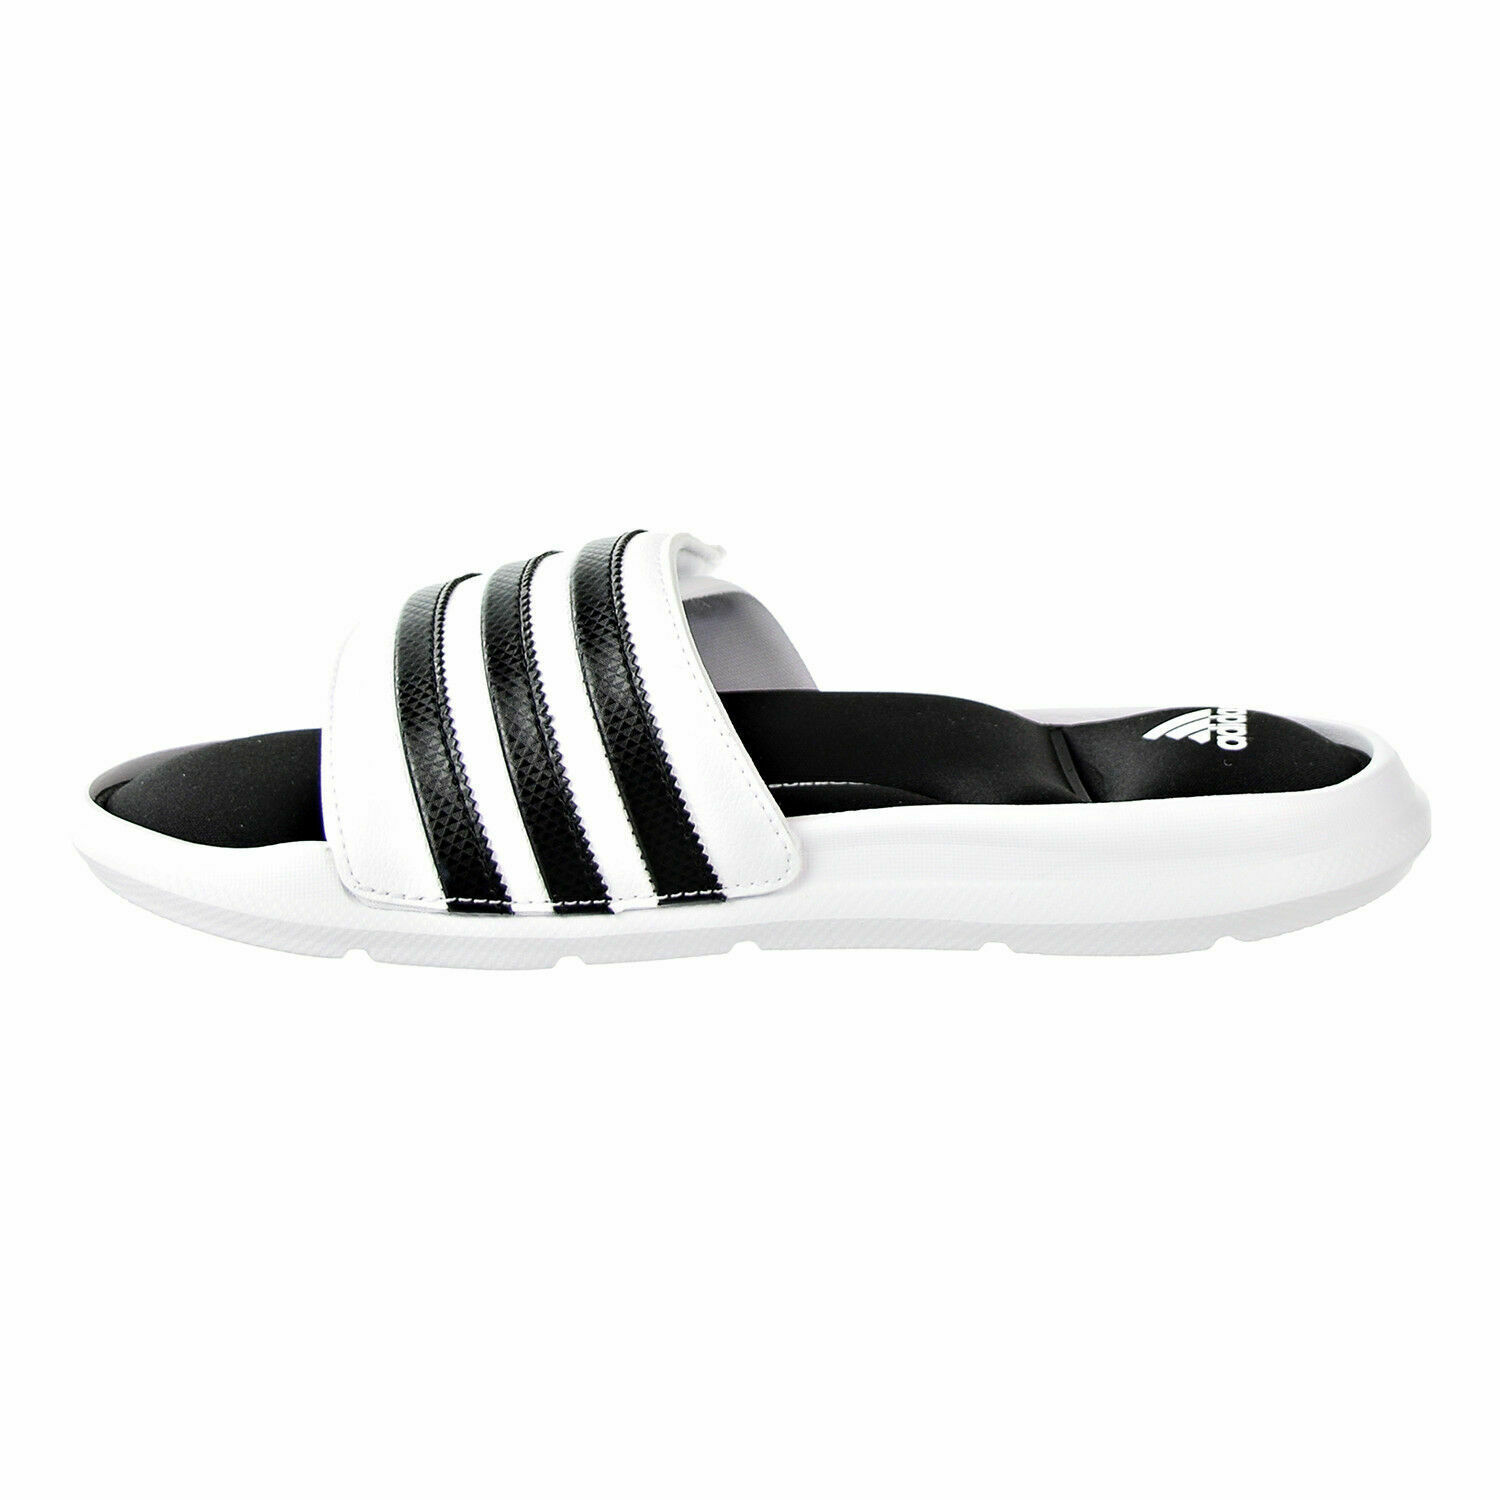 ADIDAS SUPERSTAR SURROUND MEMORY FOAM SLIDE SANDALS MEN SHOES MILK SIZE 15 NEW image 3